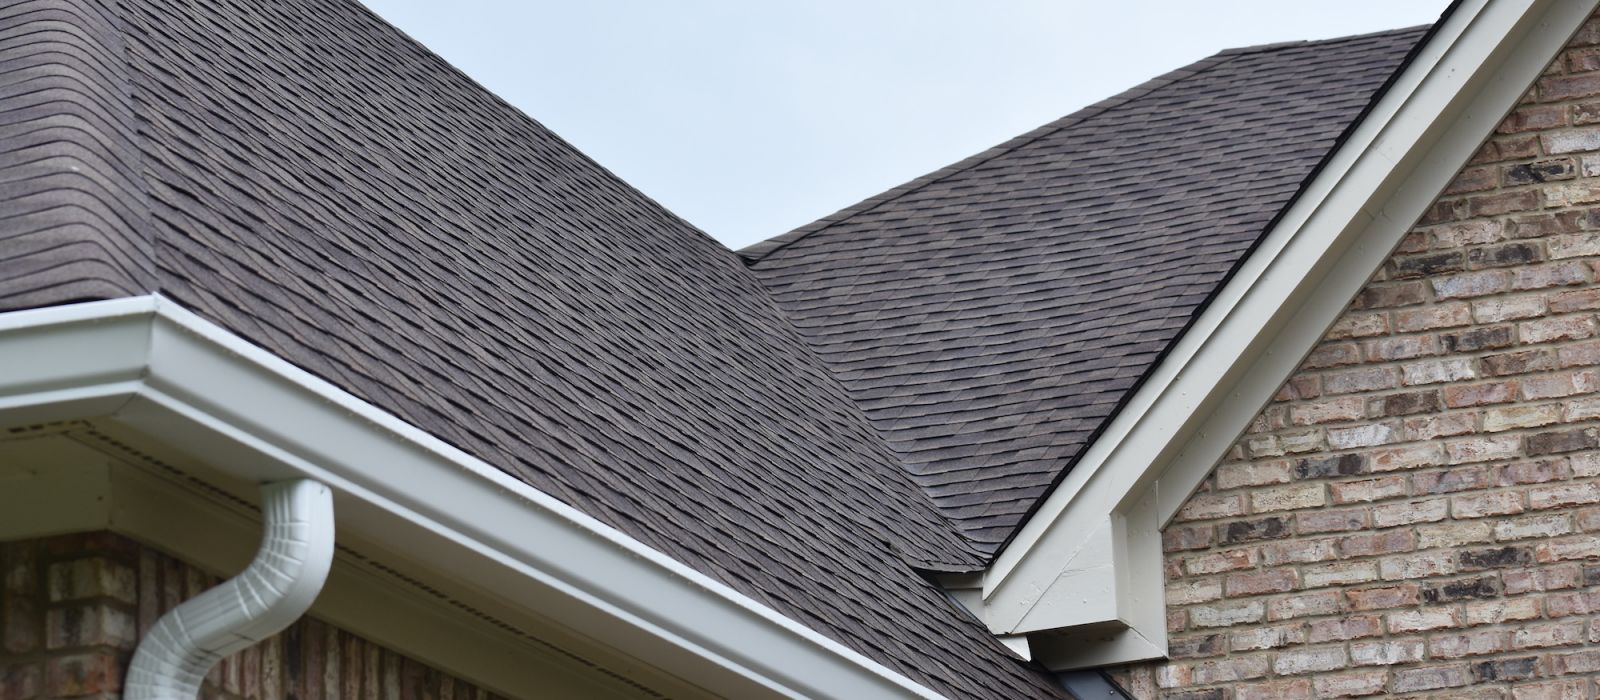 Atlanta's Roofing Experts | Matt's Roofing and Gutters